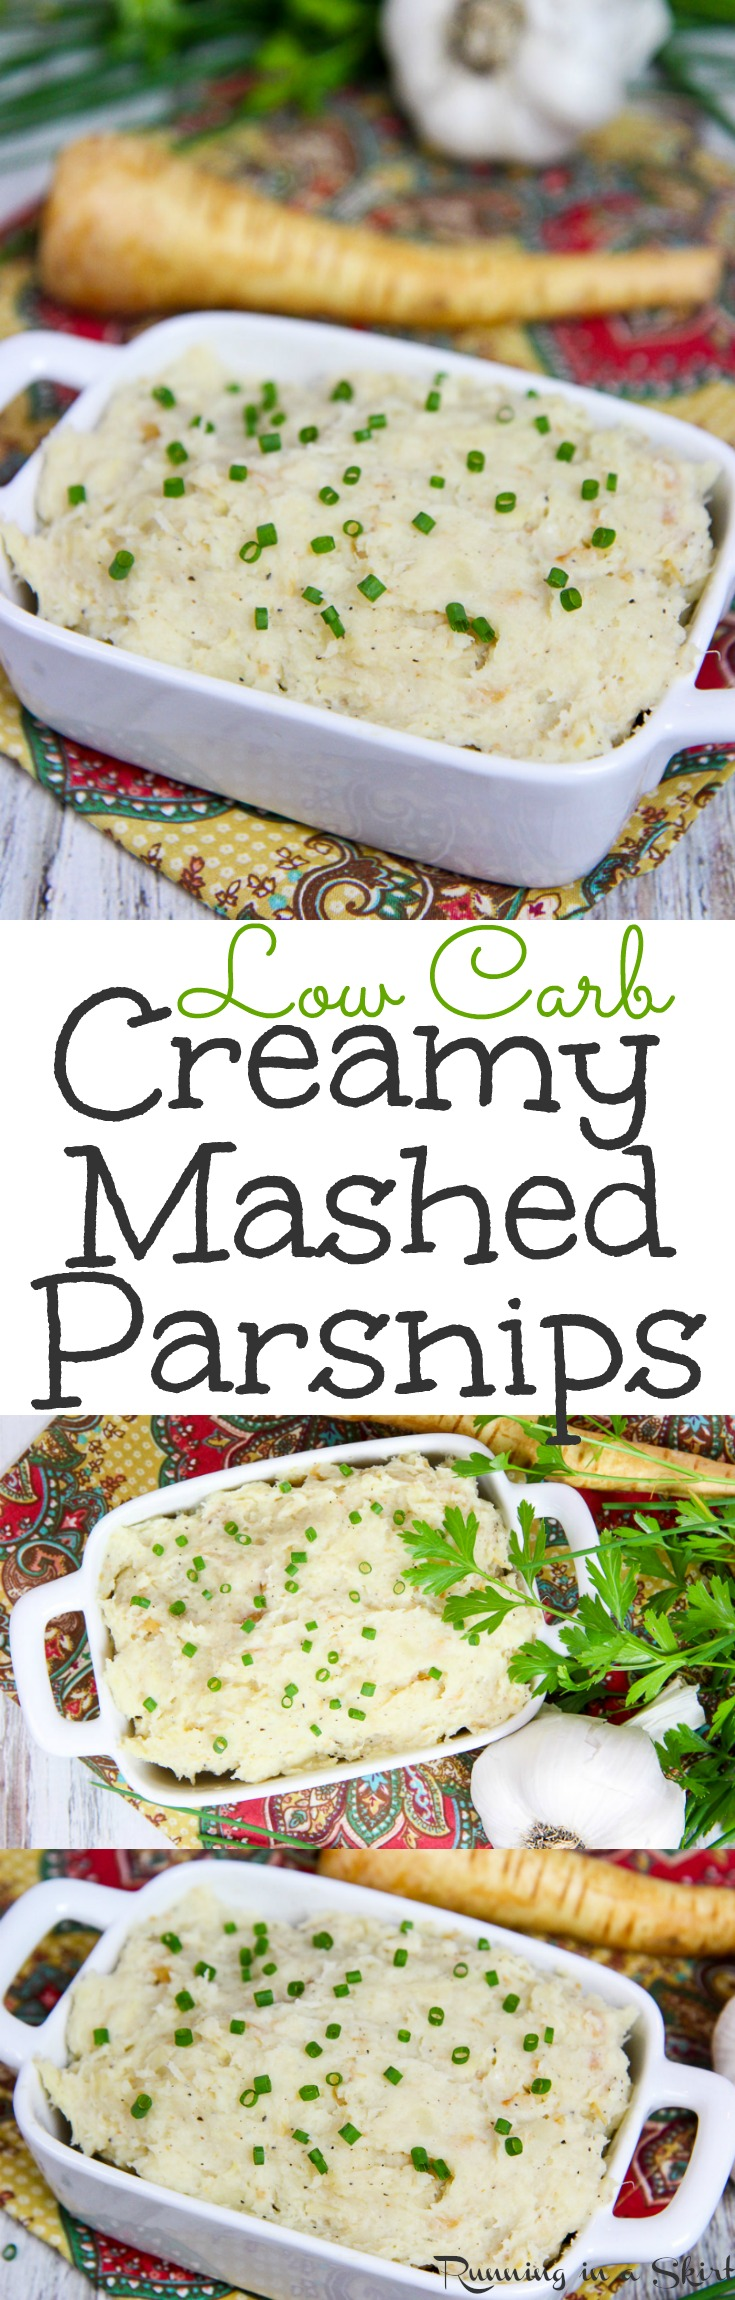 4 Ingredient Low Carb Healthy Mashed Parsnips recipe. A creamy alternative to mashed potatoes for dinners or Thanksgiving. A great use of veggies! Vegetarian & Gluten Free / Running in a Skirt via @juliewunder